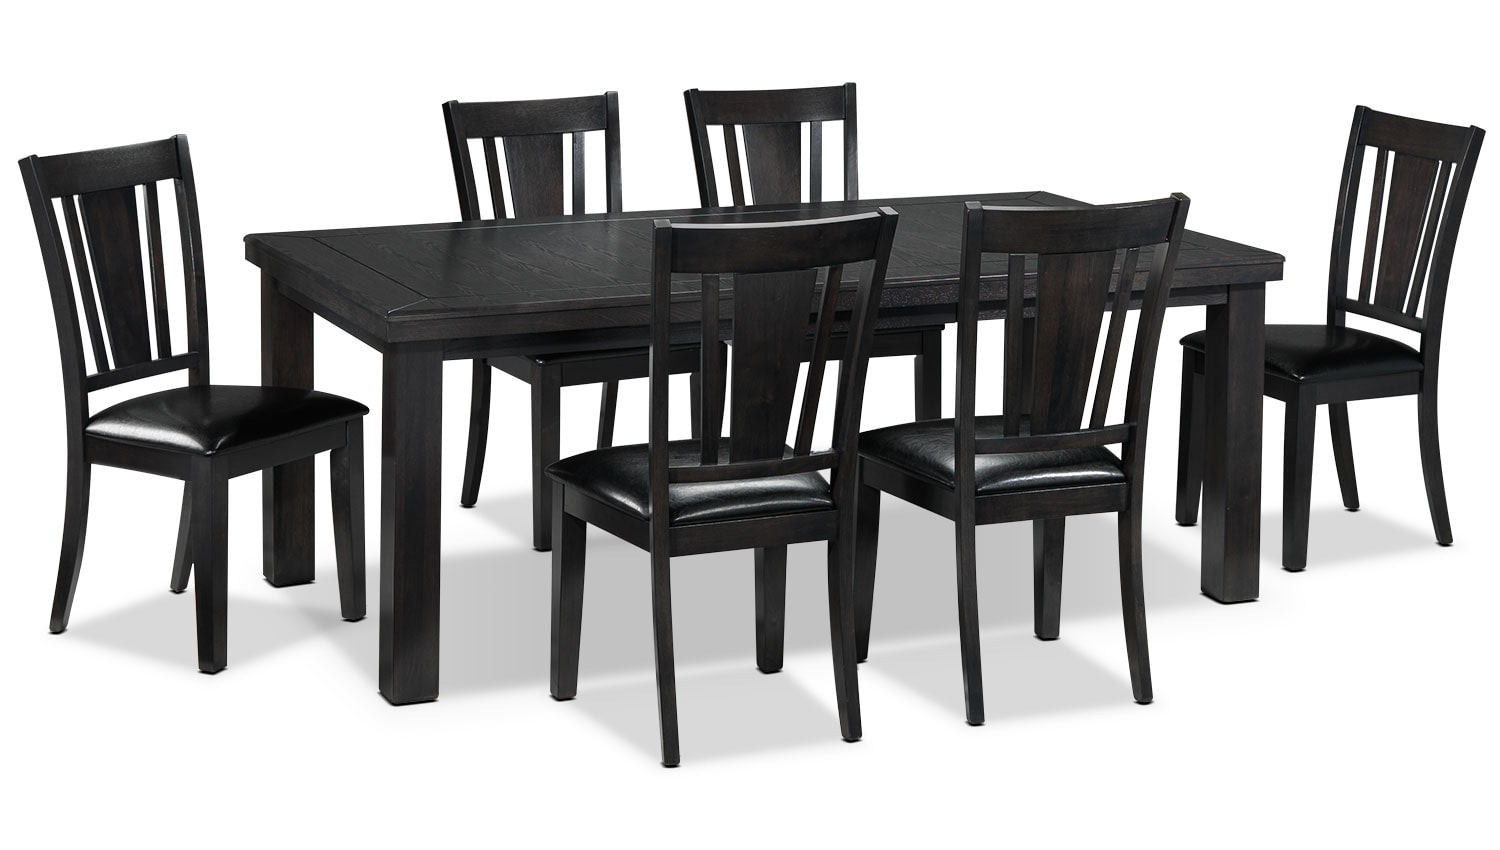 Marlowe 7-Piece Dinette Set - Charcoal